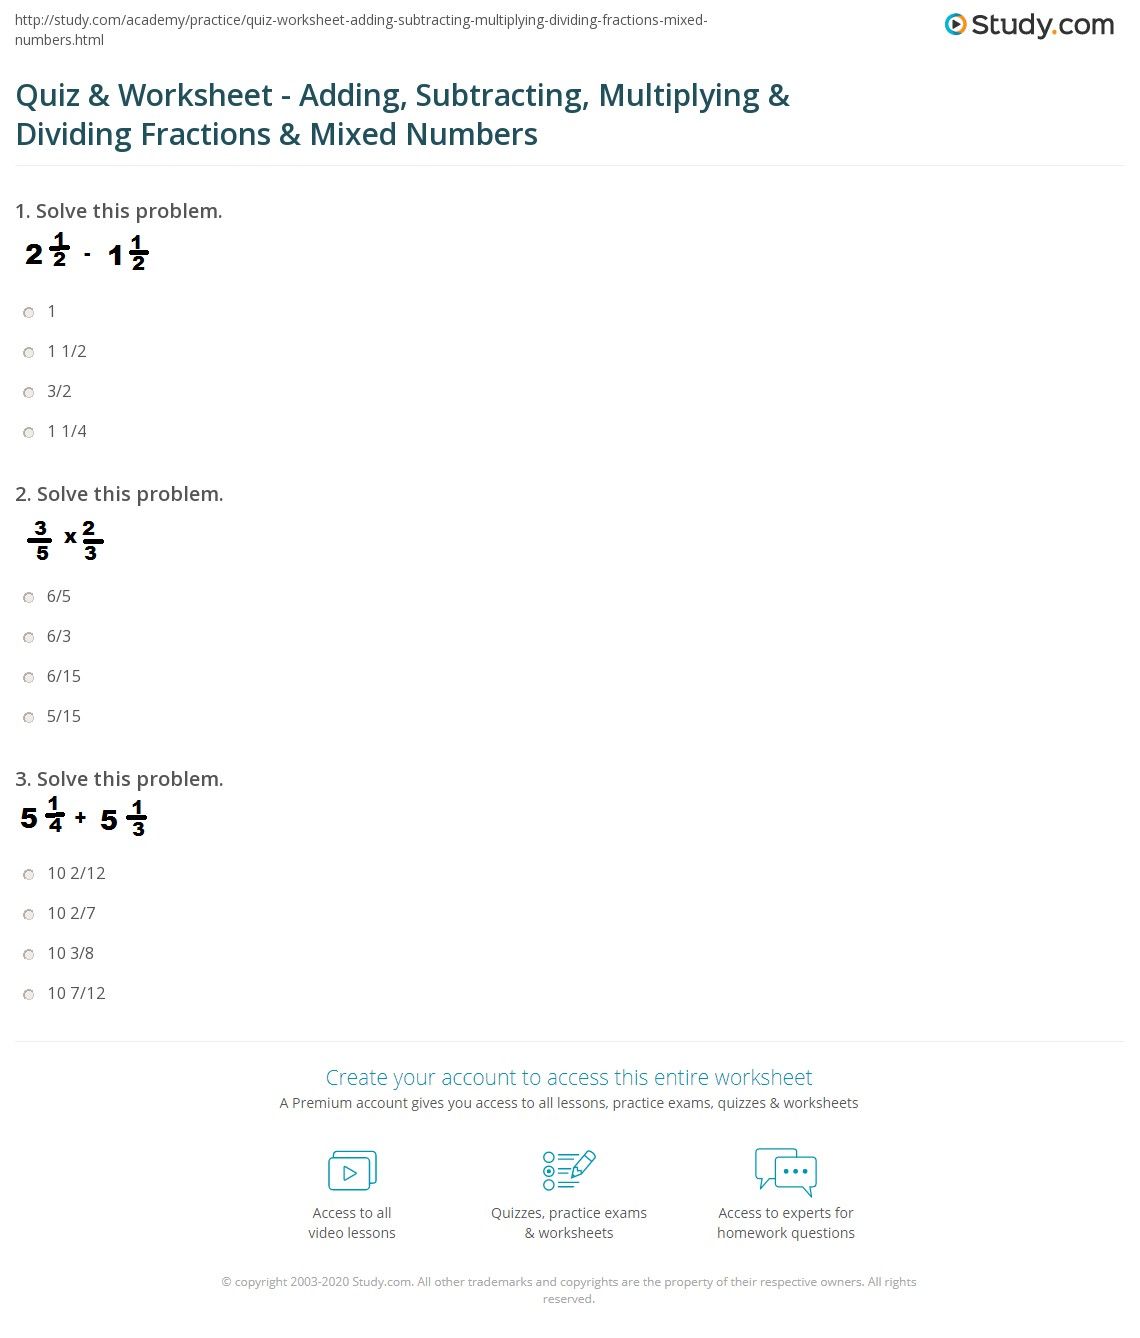 worksheet Adding Subtracting Multiplying And Dividing Fractions Worksheets quiz worksheet adding subtracting multiplying dividing print add subtract multiply divide fractions mixed numbers worksheet